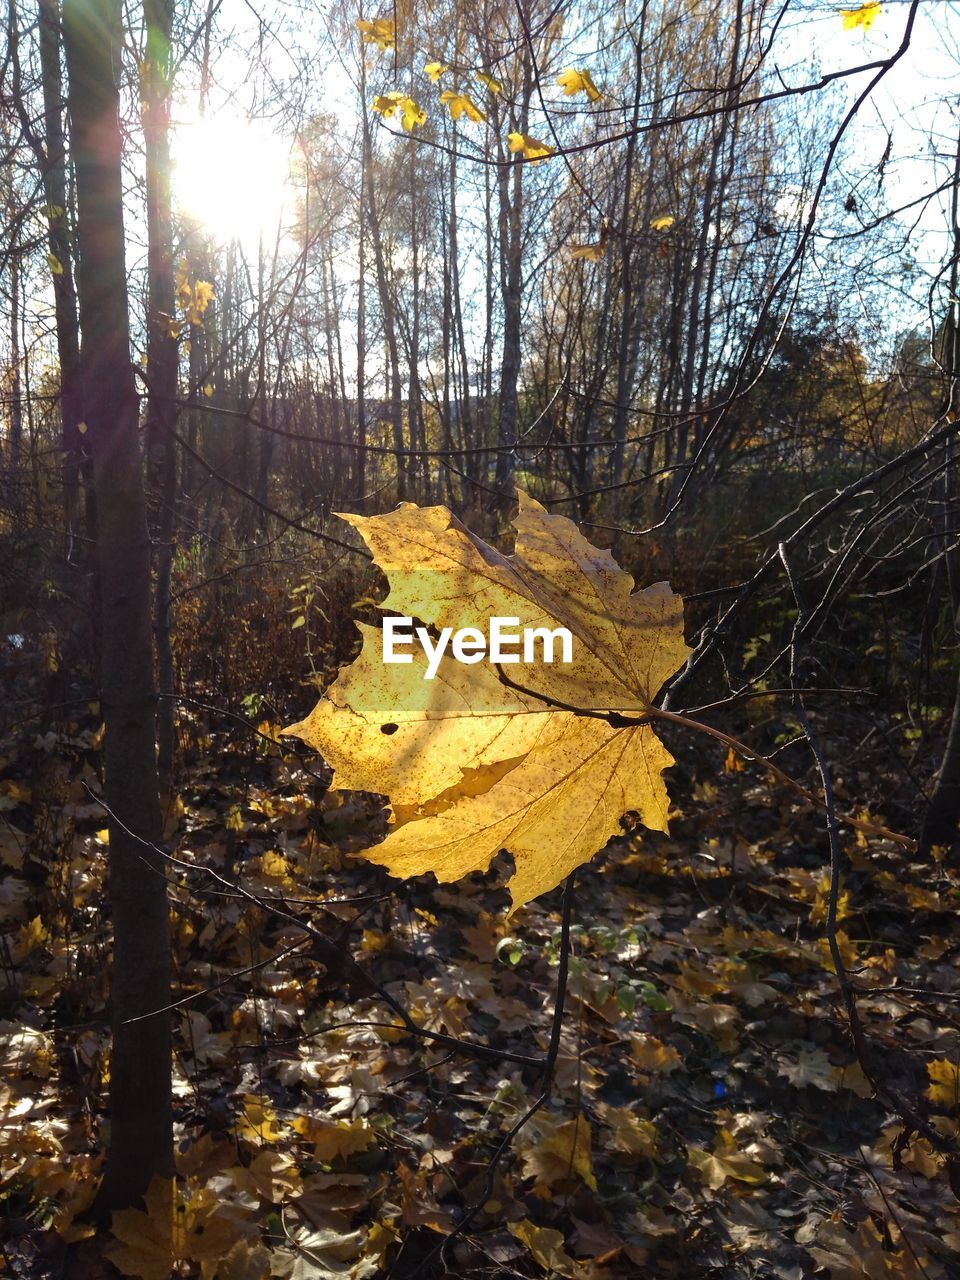 tree, plant, plant part, nature, leaf, sunlight, autumn, change, tranquility, no people, day, sky, land, yellow, forest, falling, dry, tree trunk, sunbeam, growth, outdoors, sun, lens flare, woodland, leaves, bright, fall